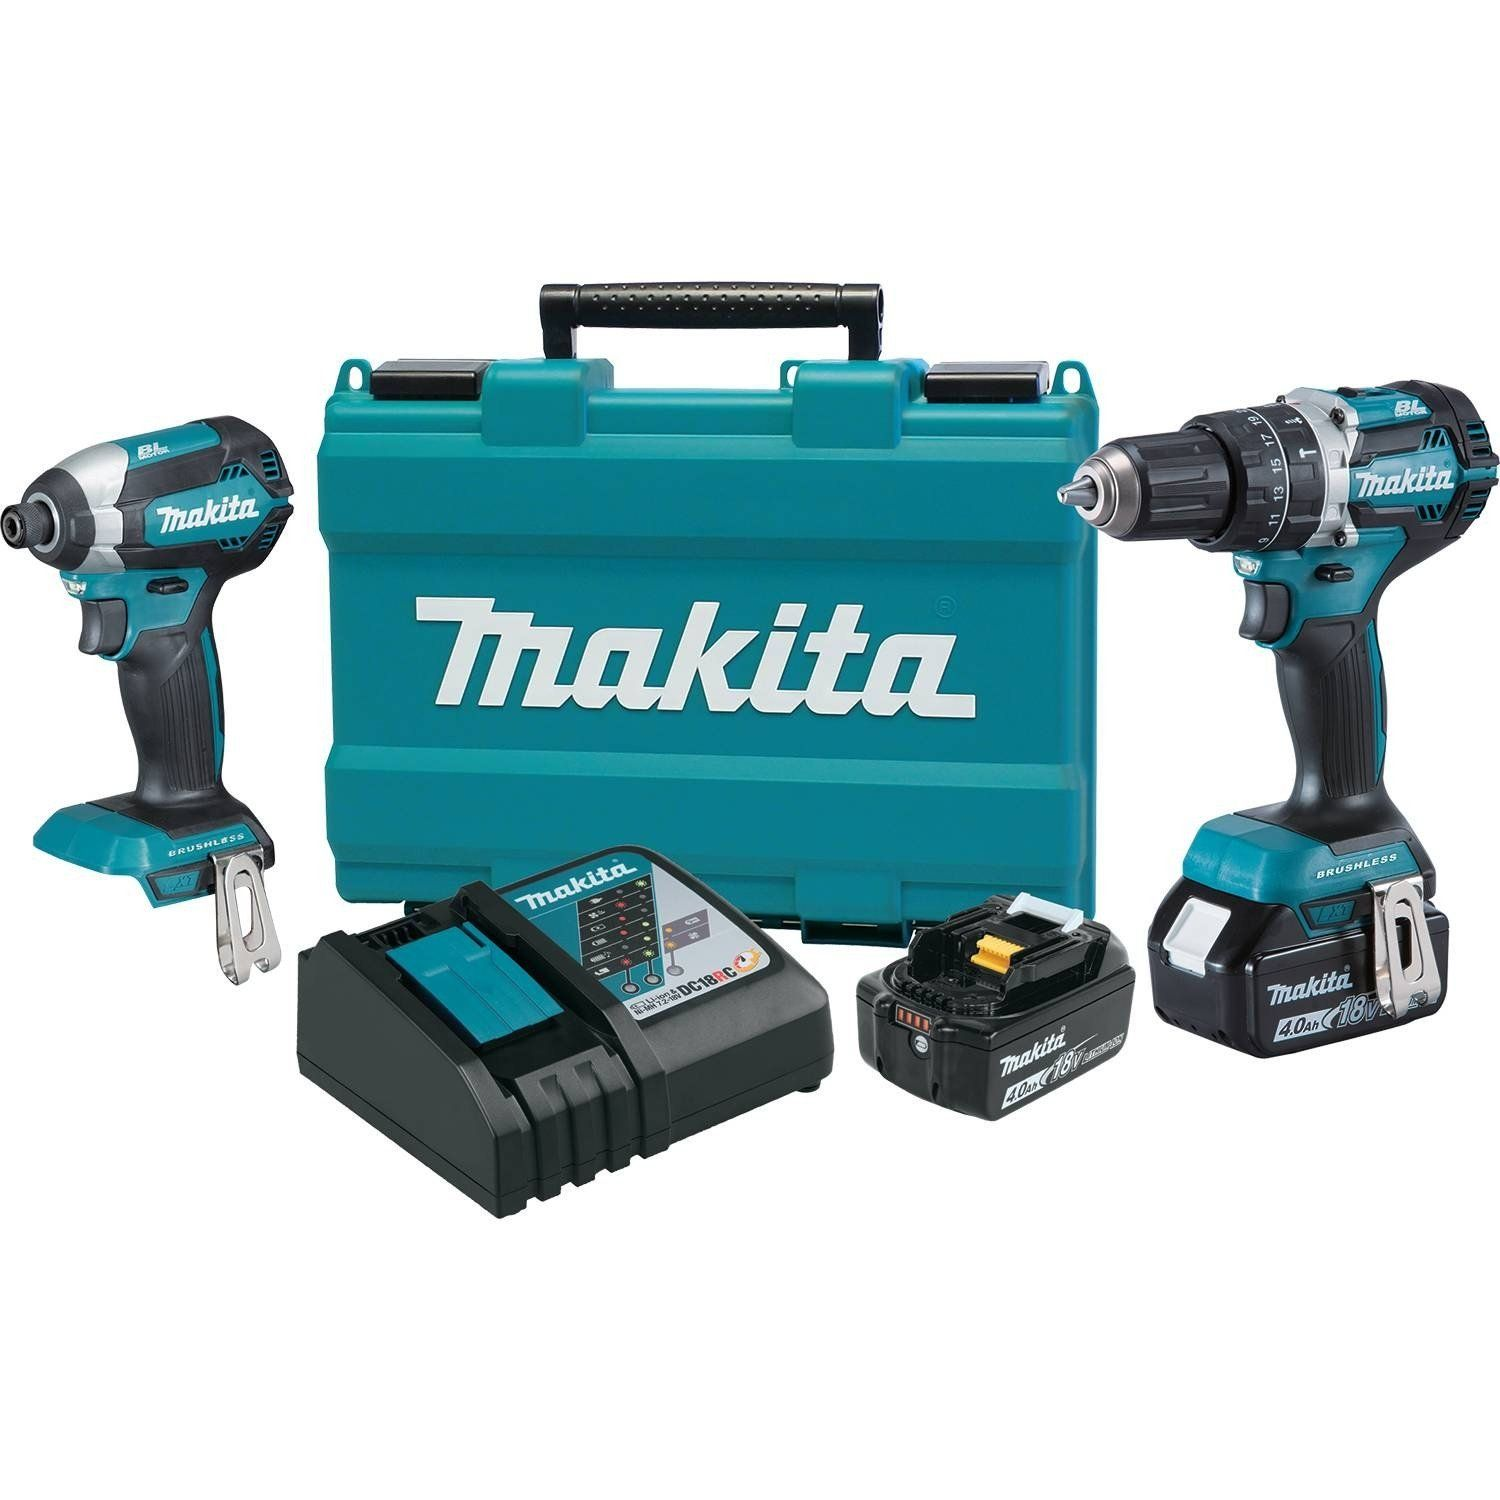 Makita Xt269m 18v Lxt Lithium Ion Brushless Cordless 2 Pc Combo Kit 4 0ah Insider S Special Review You Can T Combo Kit Drill Driver Cordless Power Tools